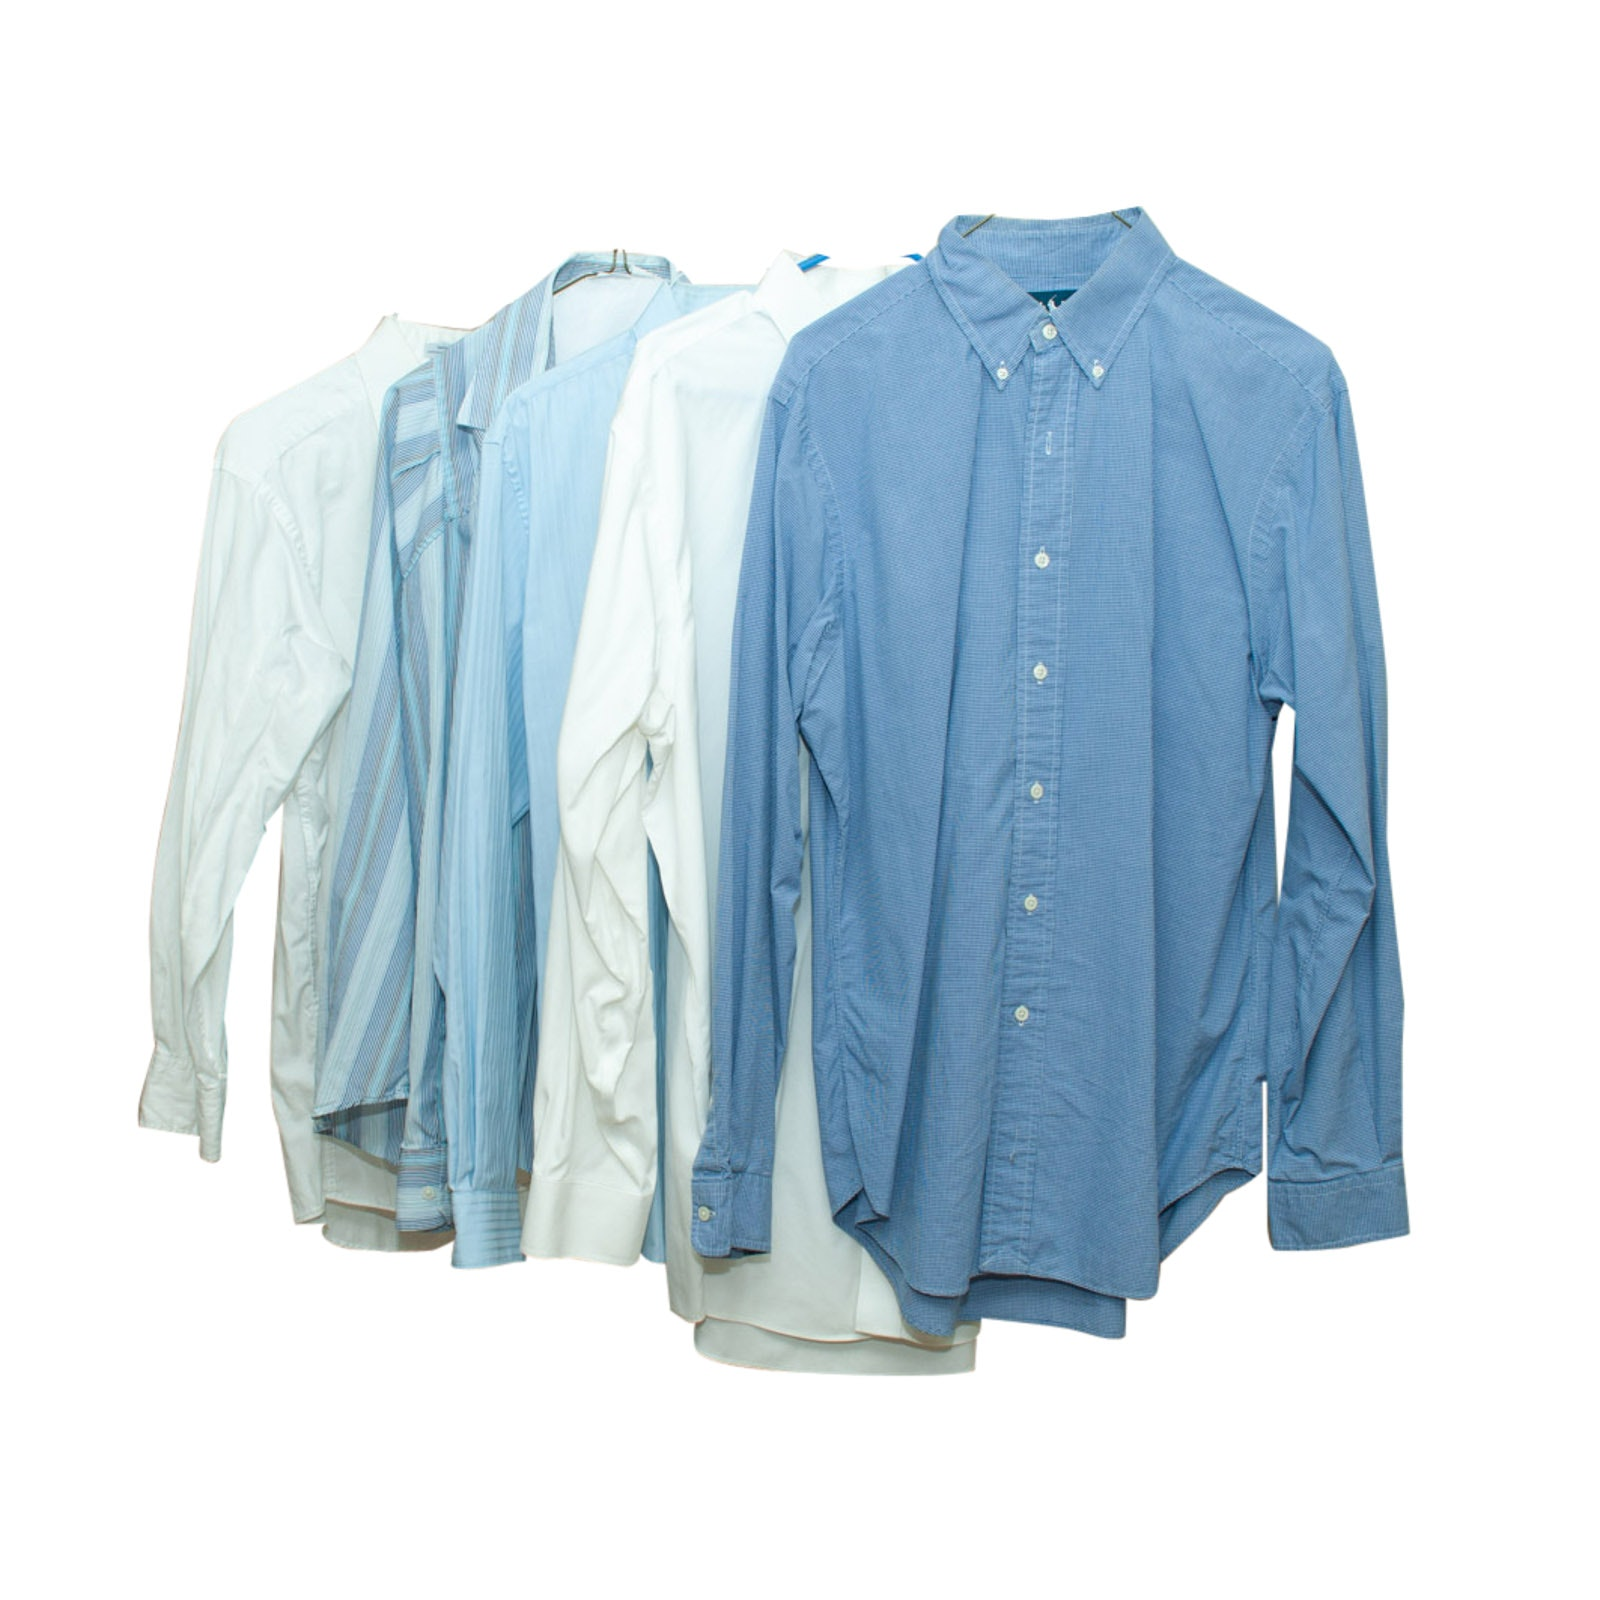 Men's Button-Front Dress Shirts Including Kenneth Cole and Brooks Brothers